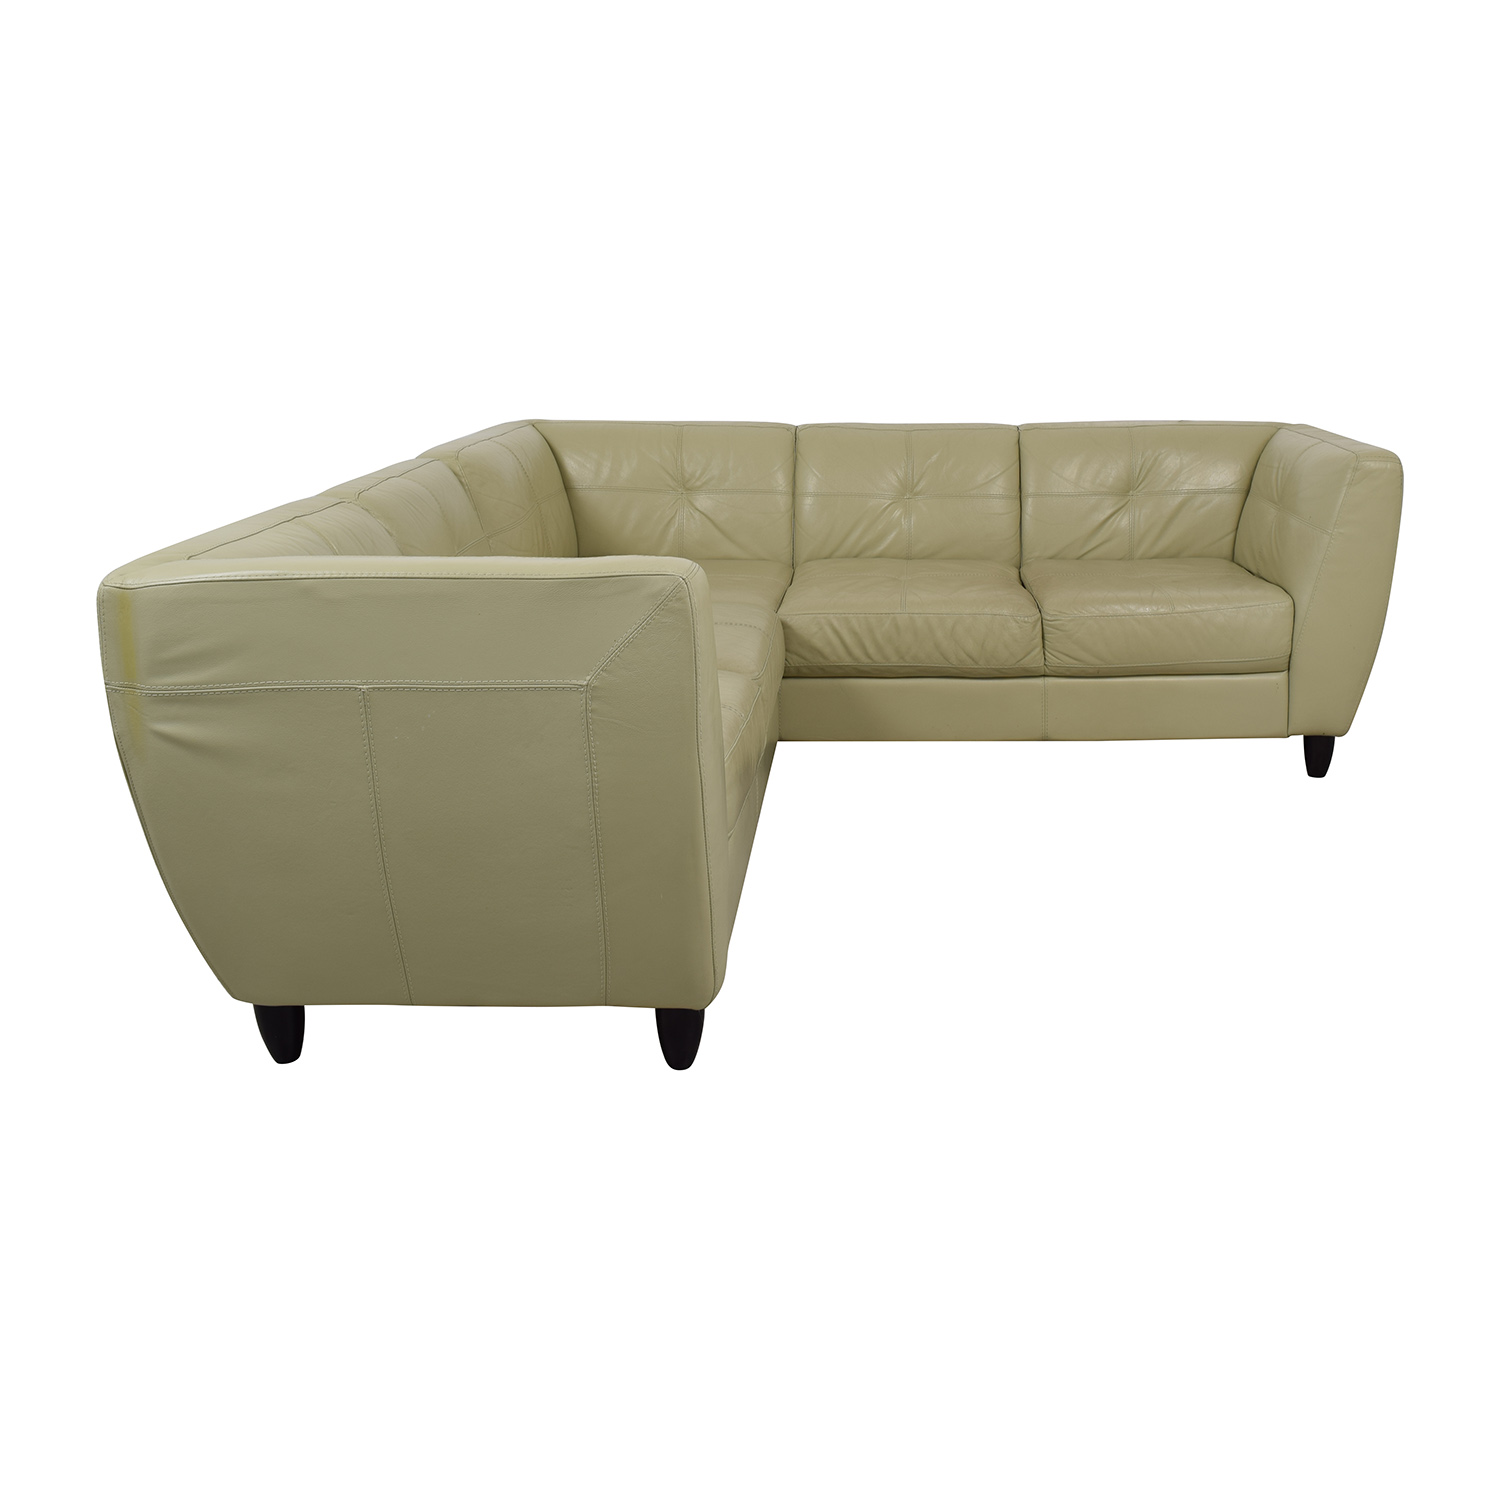 buy Raymour & Flanigan Raymour & Flanigan Five-Seater Sectional online